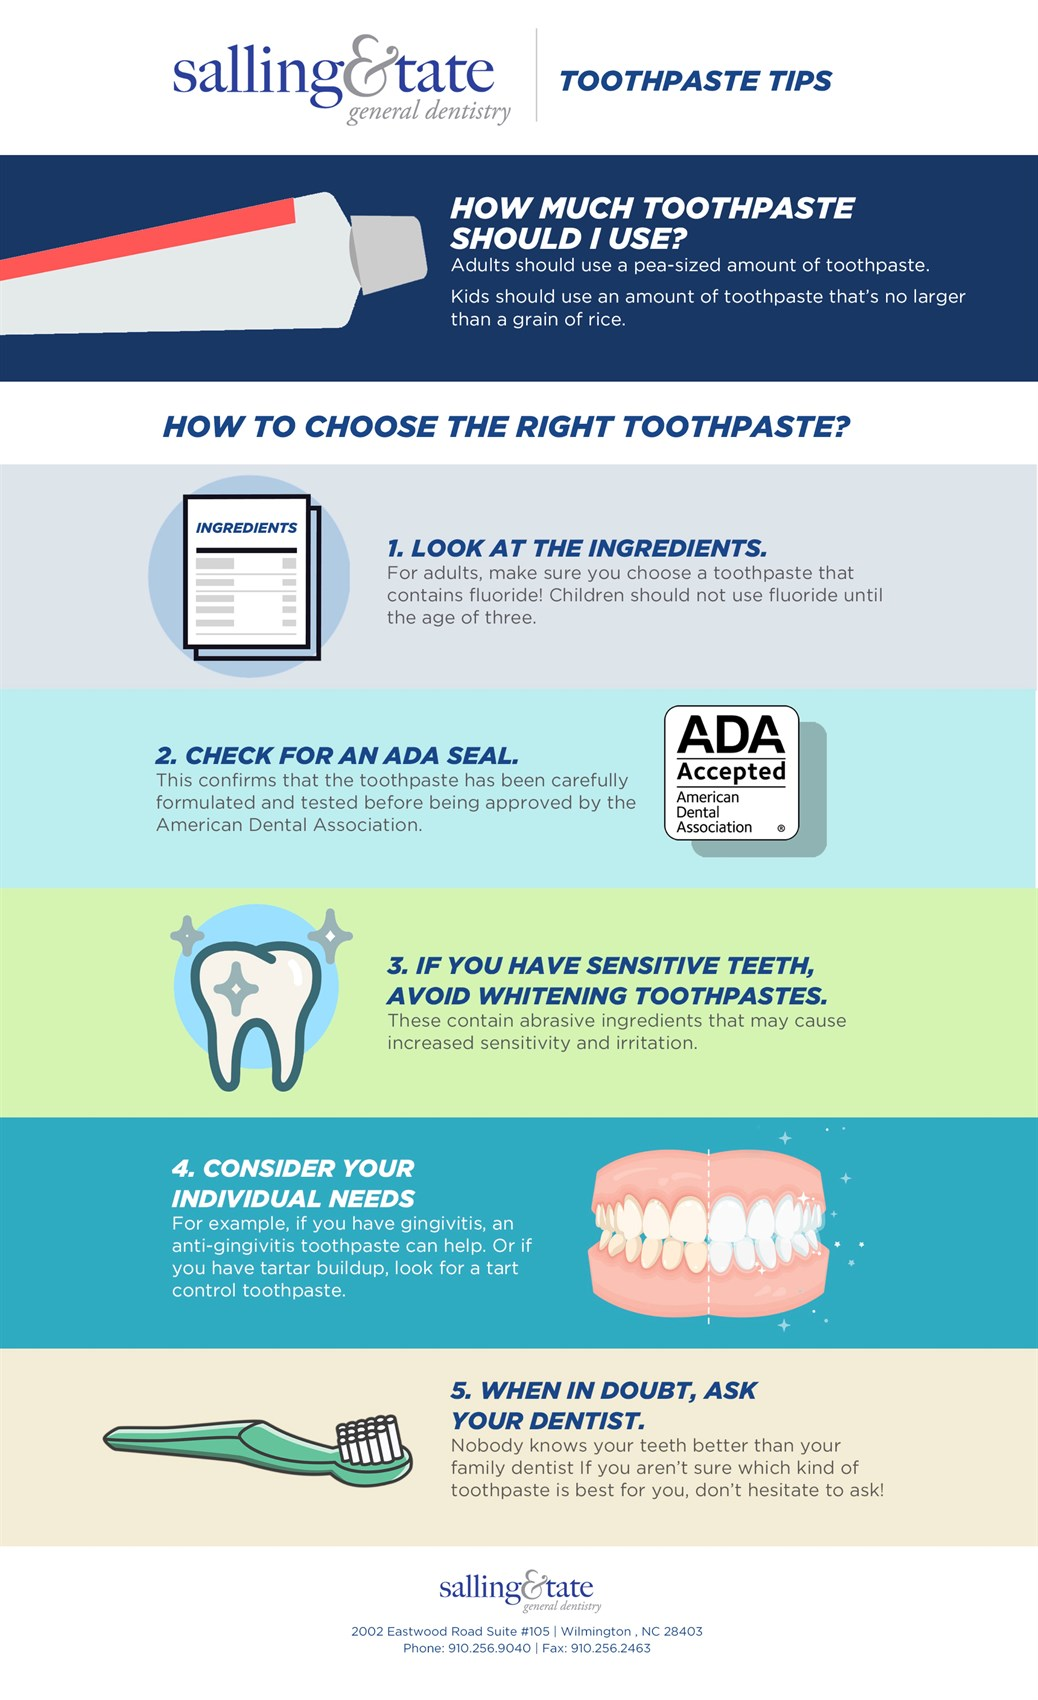 Toothpaste tips